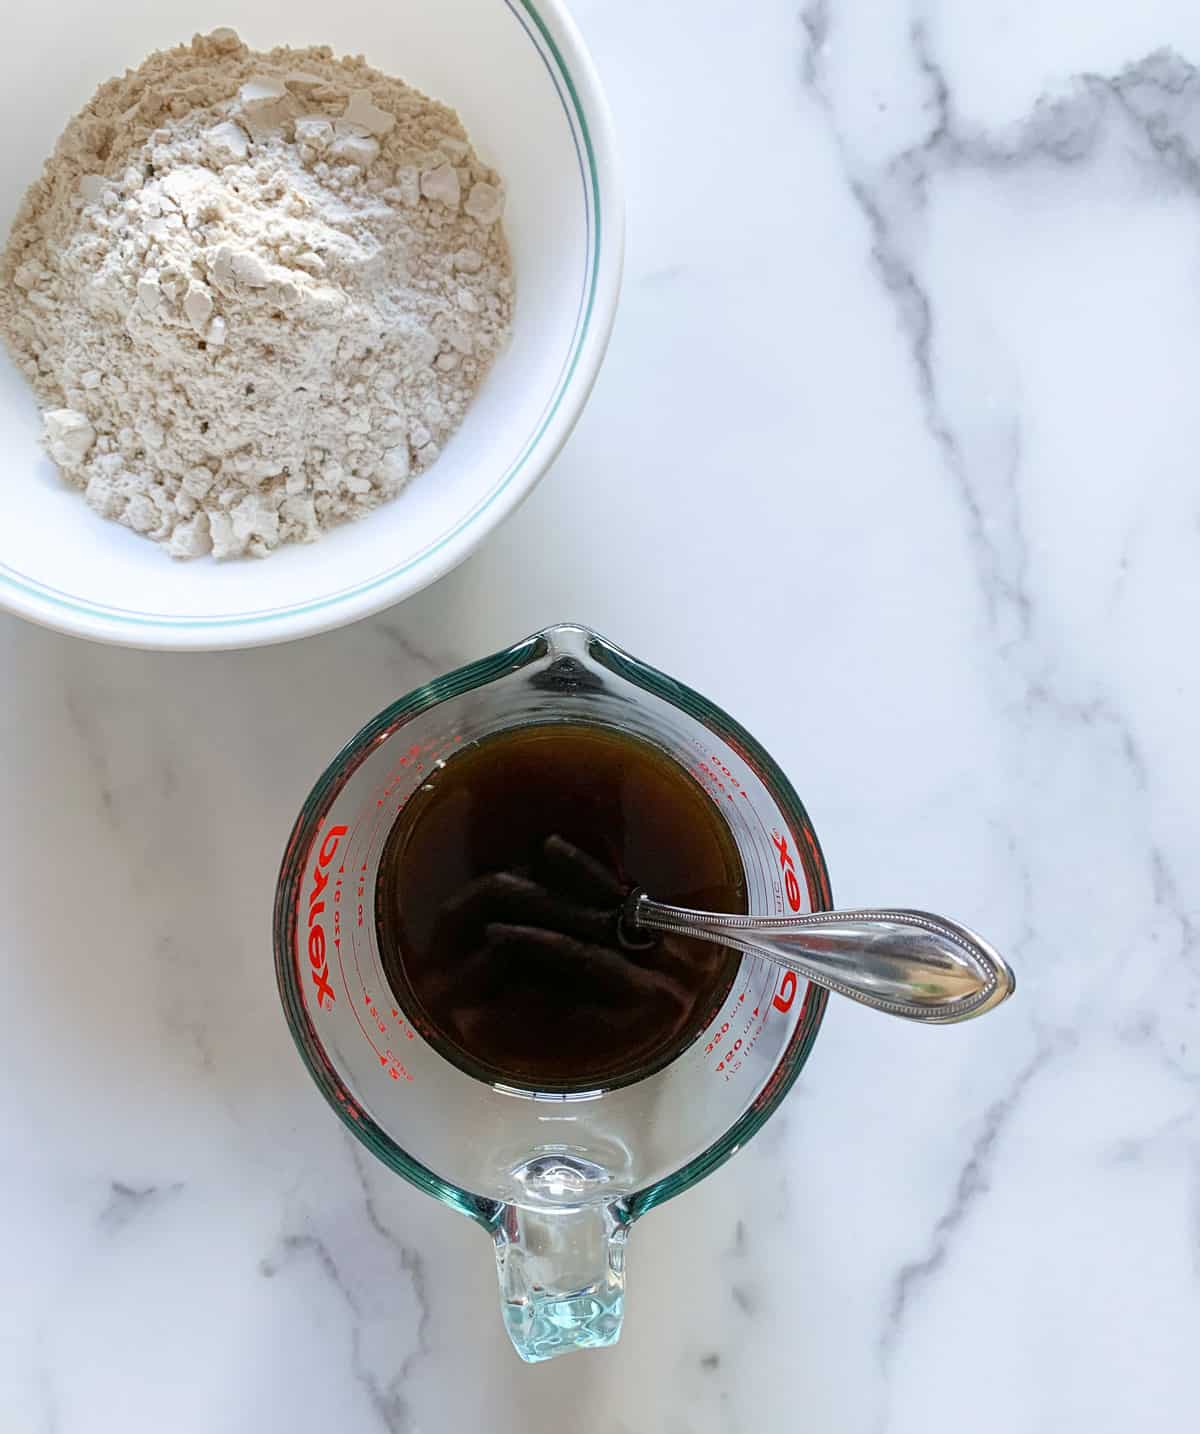 Jaggery melted in a glass measuring cup